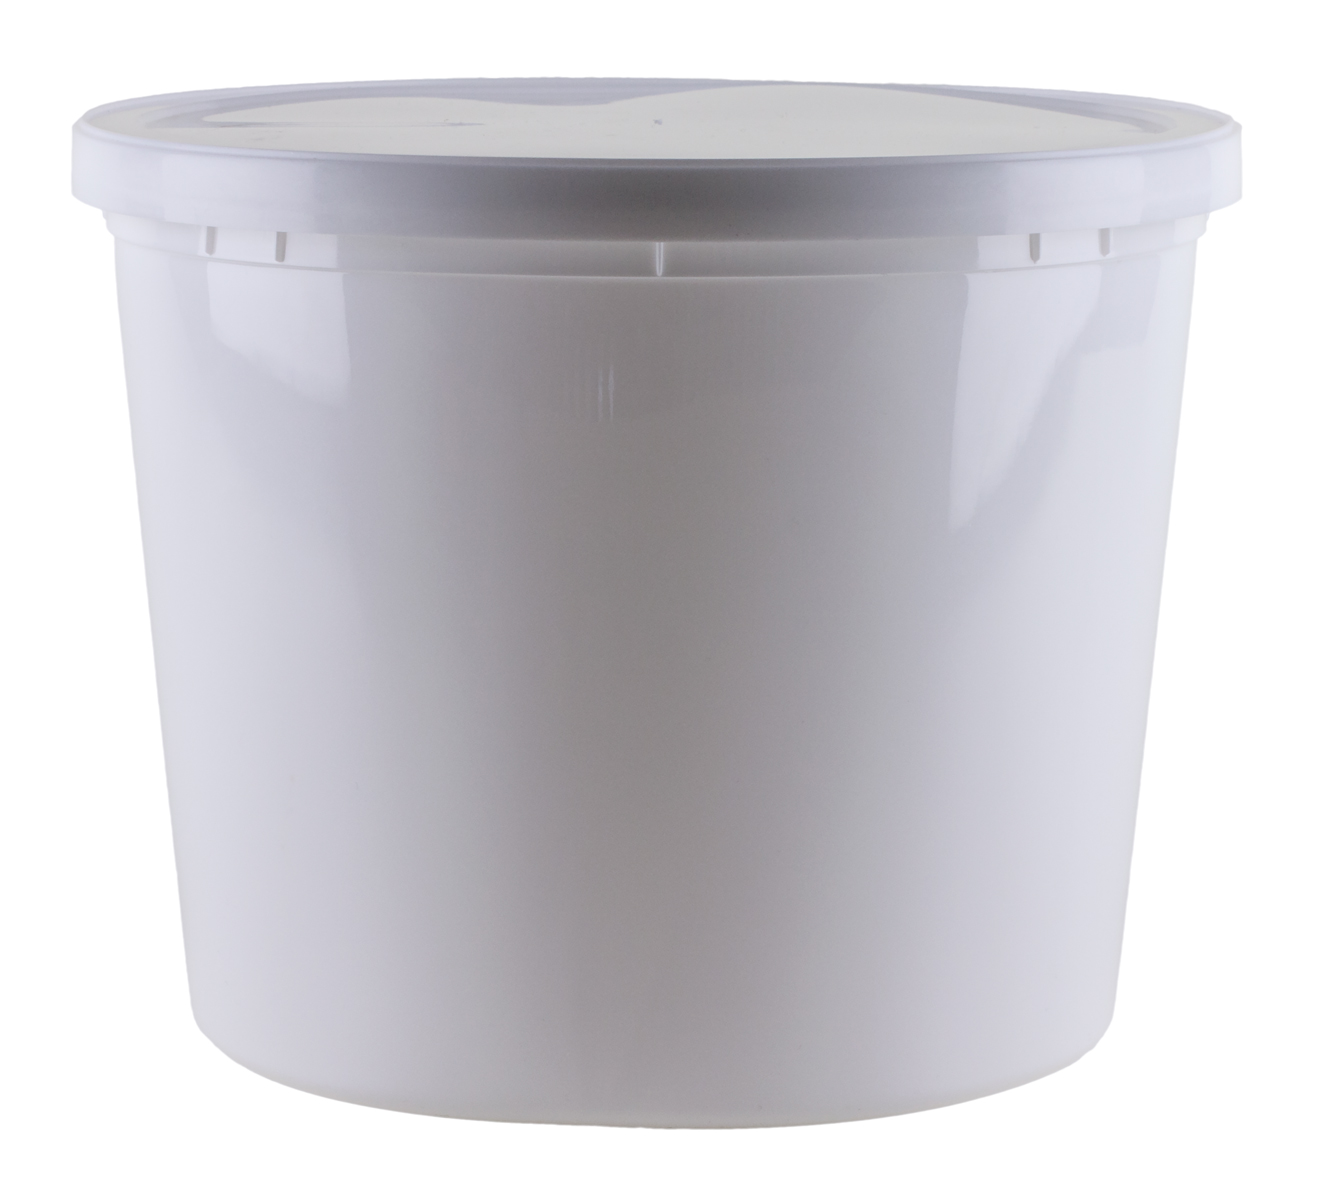 Plastic pre-weighted collection container for collecting stool